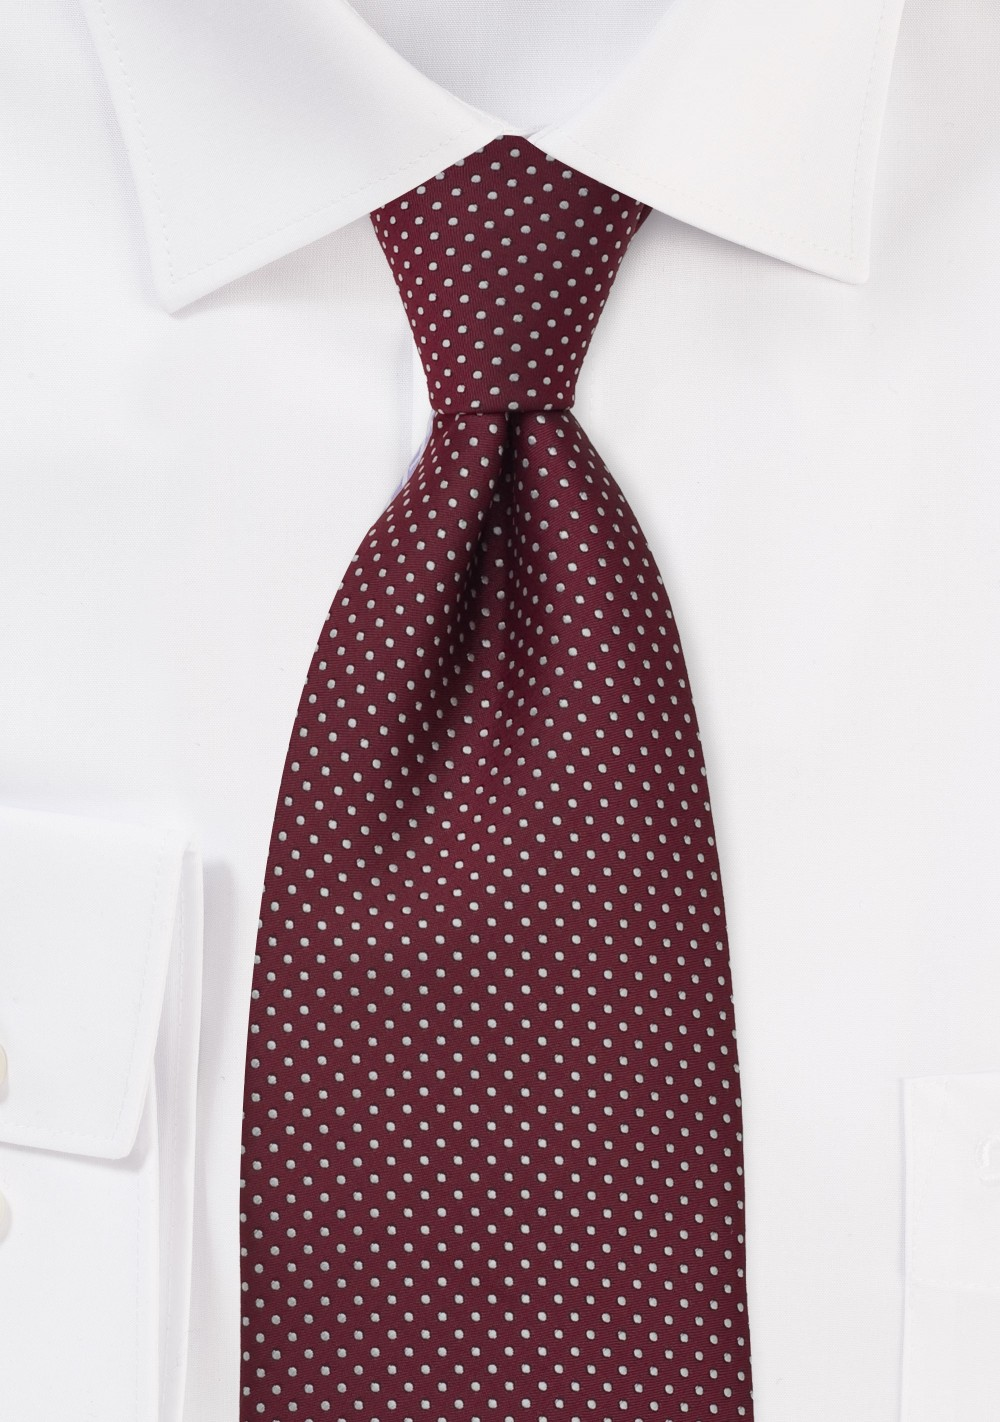 Cardinal Red Kids Neck Tie With Fine Pin Dots